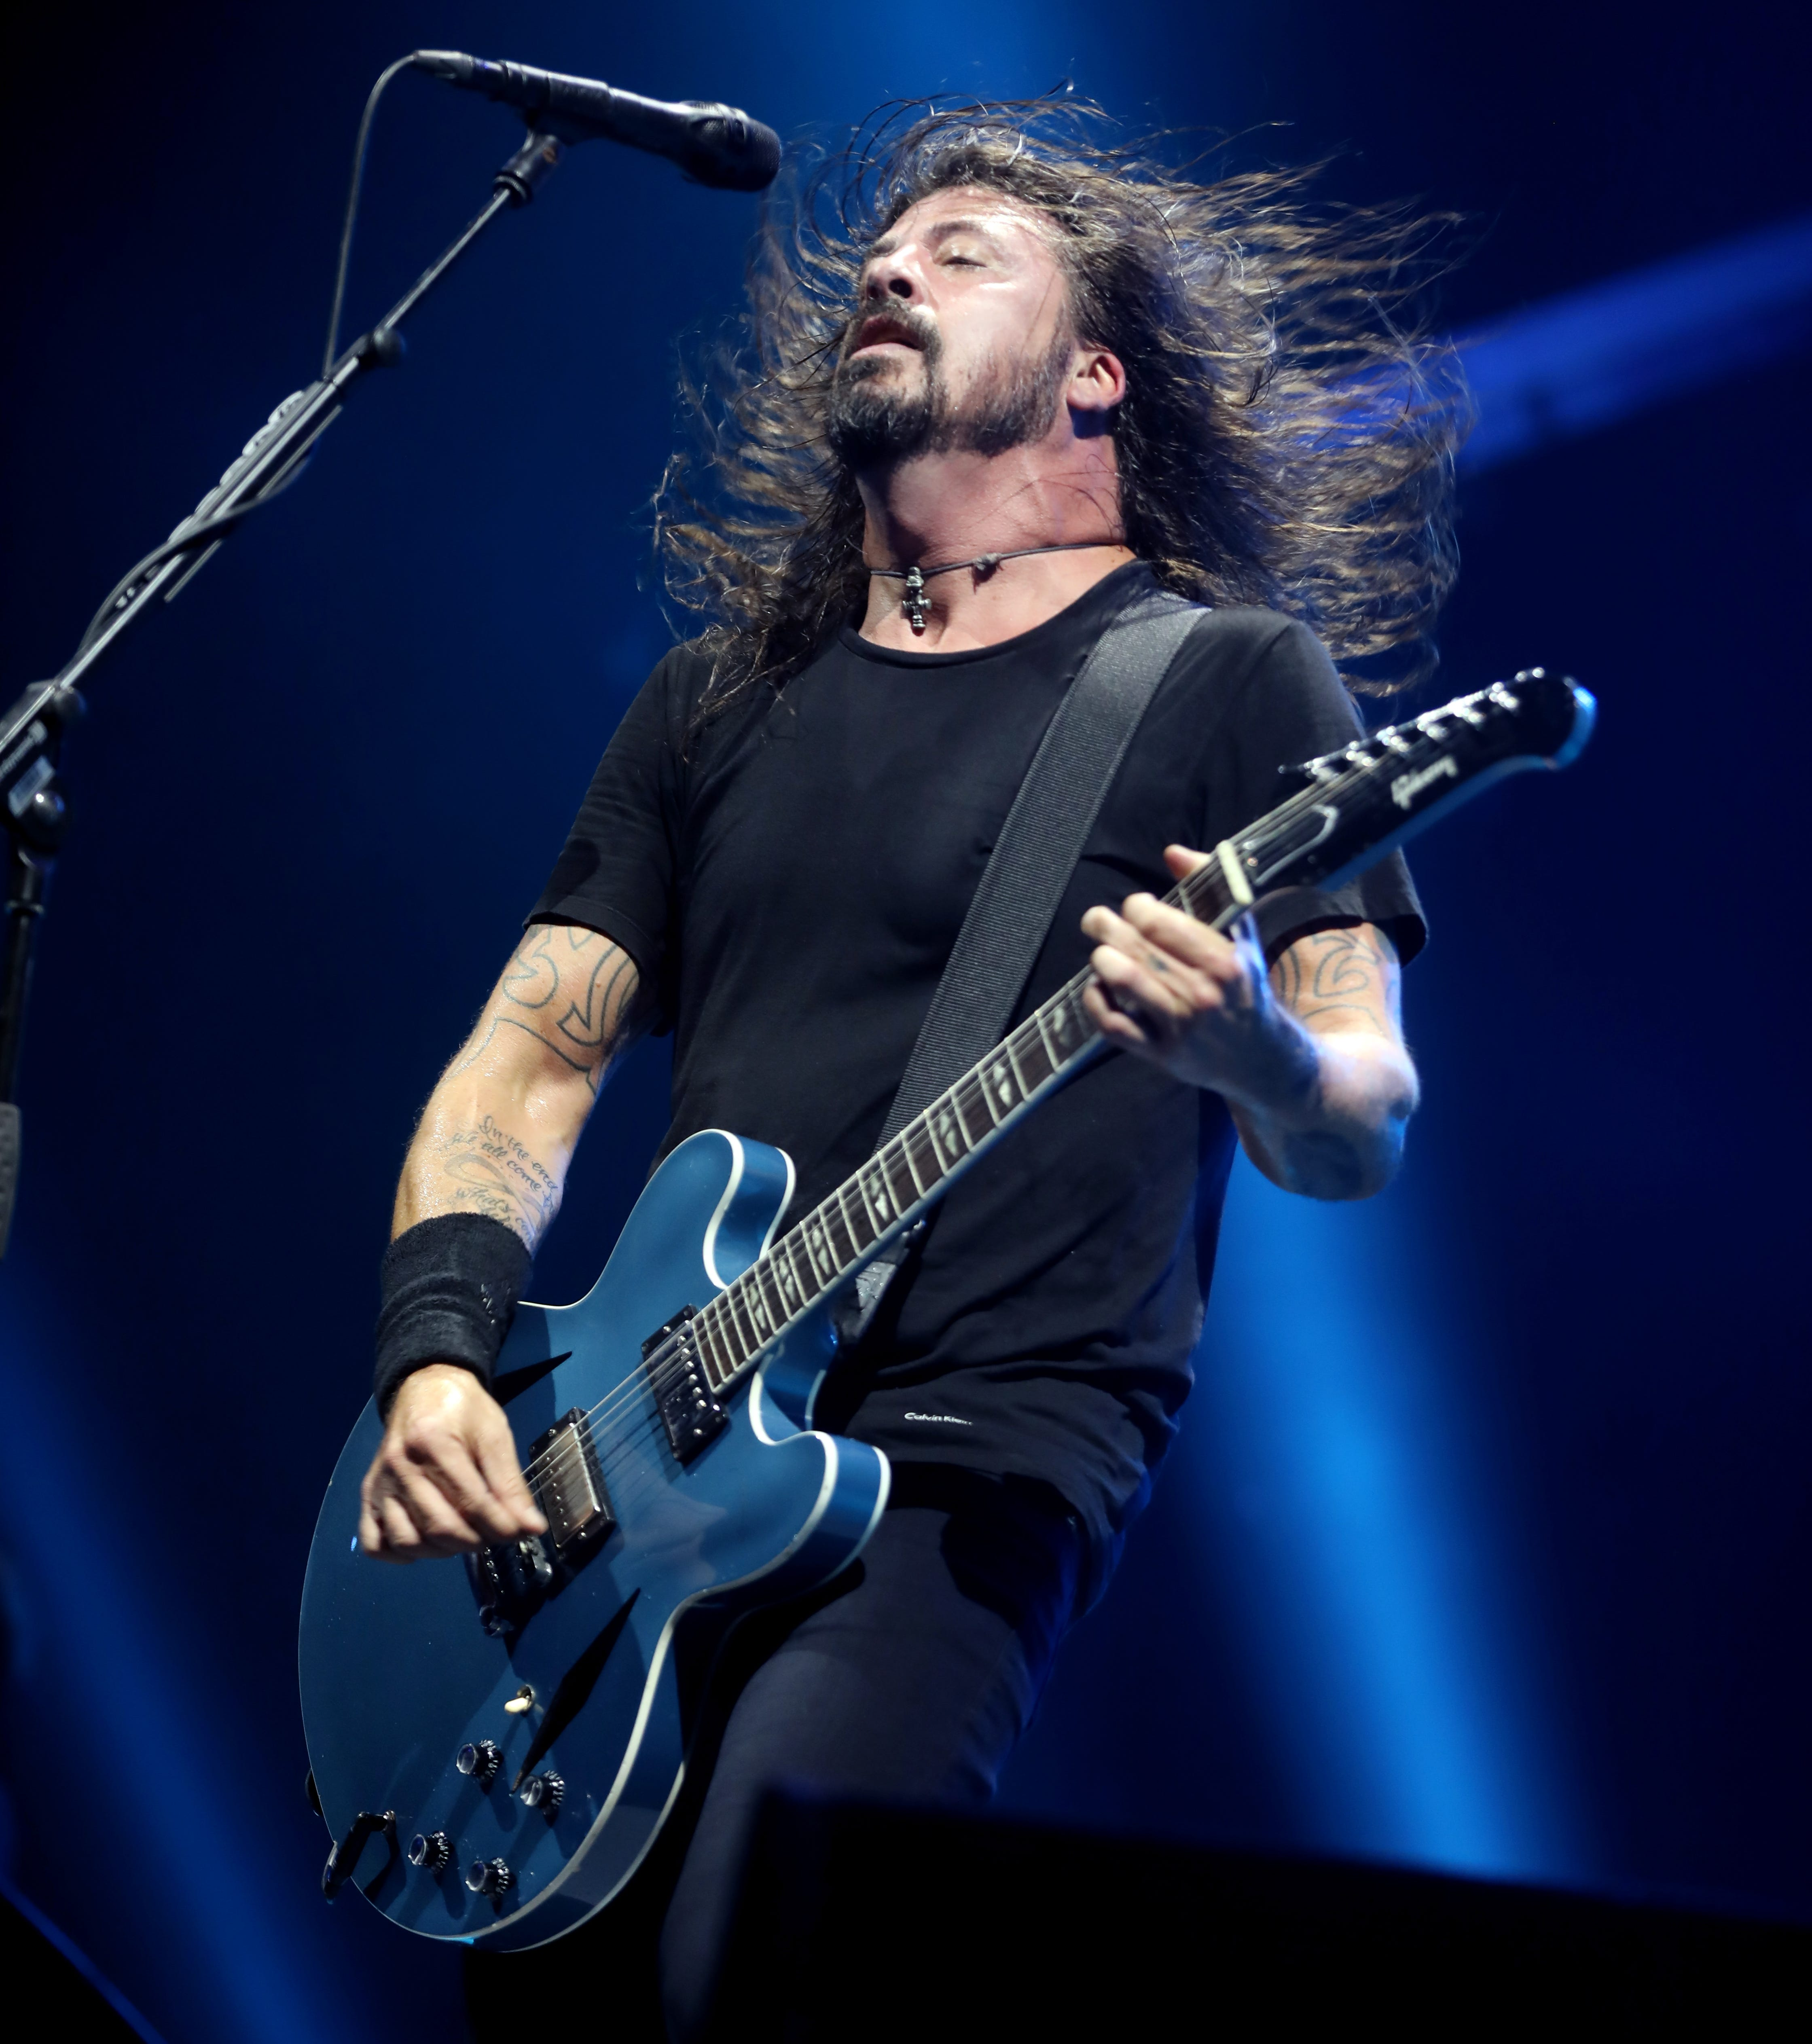 Bonnaroo 2021 lineup includes Foo Fighters, Lizzo, Tyler The Creator as festival headliners